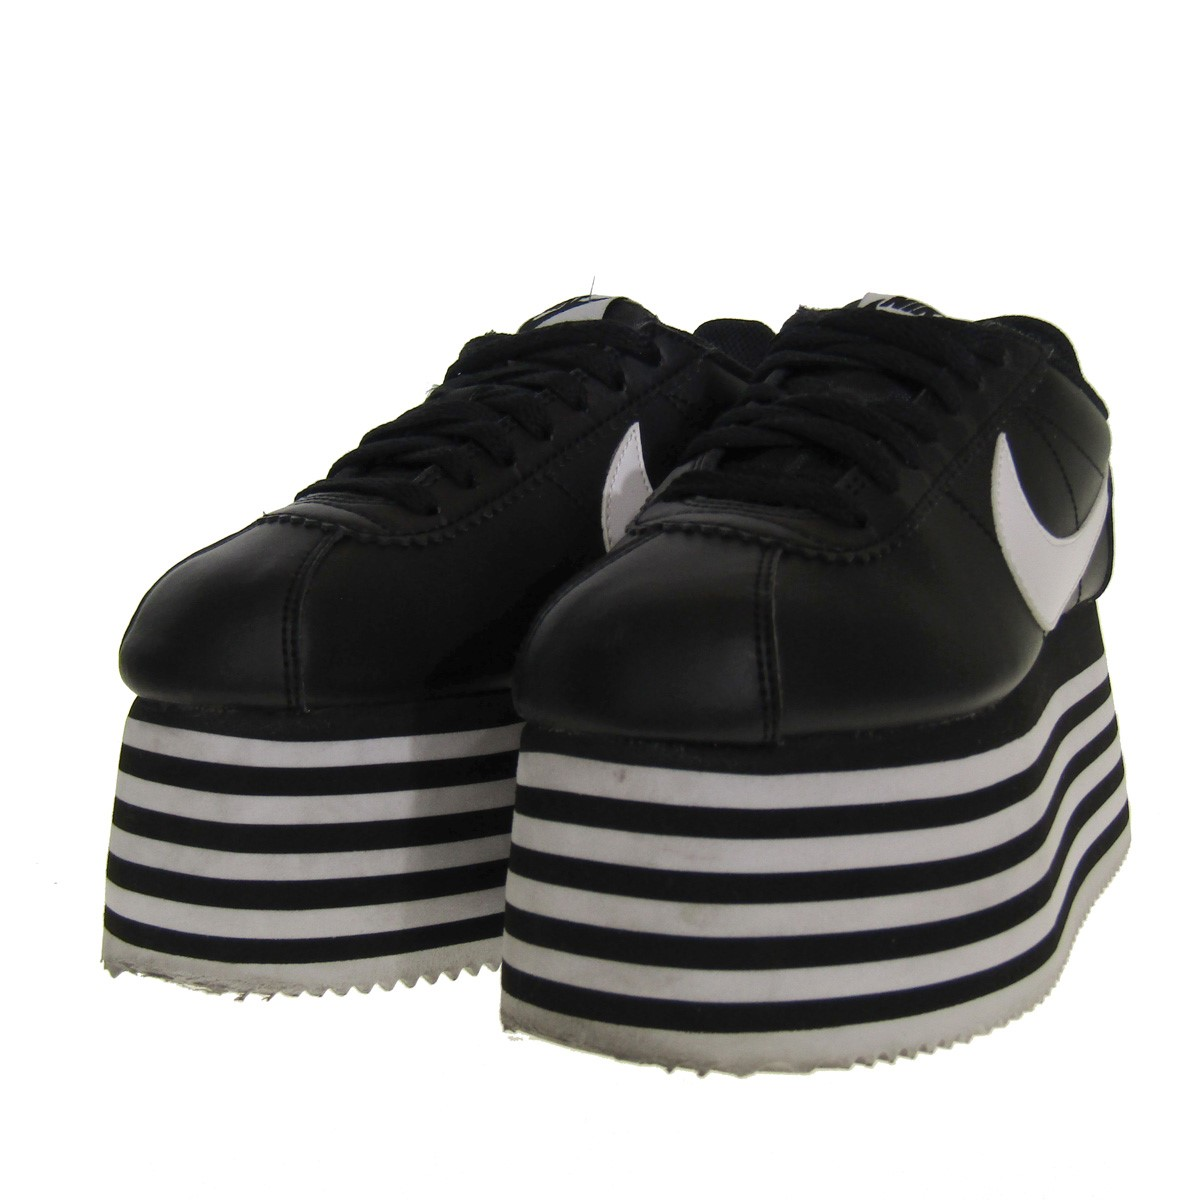 sports shoes 9bdff eb7ce COMME des GARCONS X NIKE WMS NIKE Cortez sneakers black size: 23cm  (コムデギャルソン)